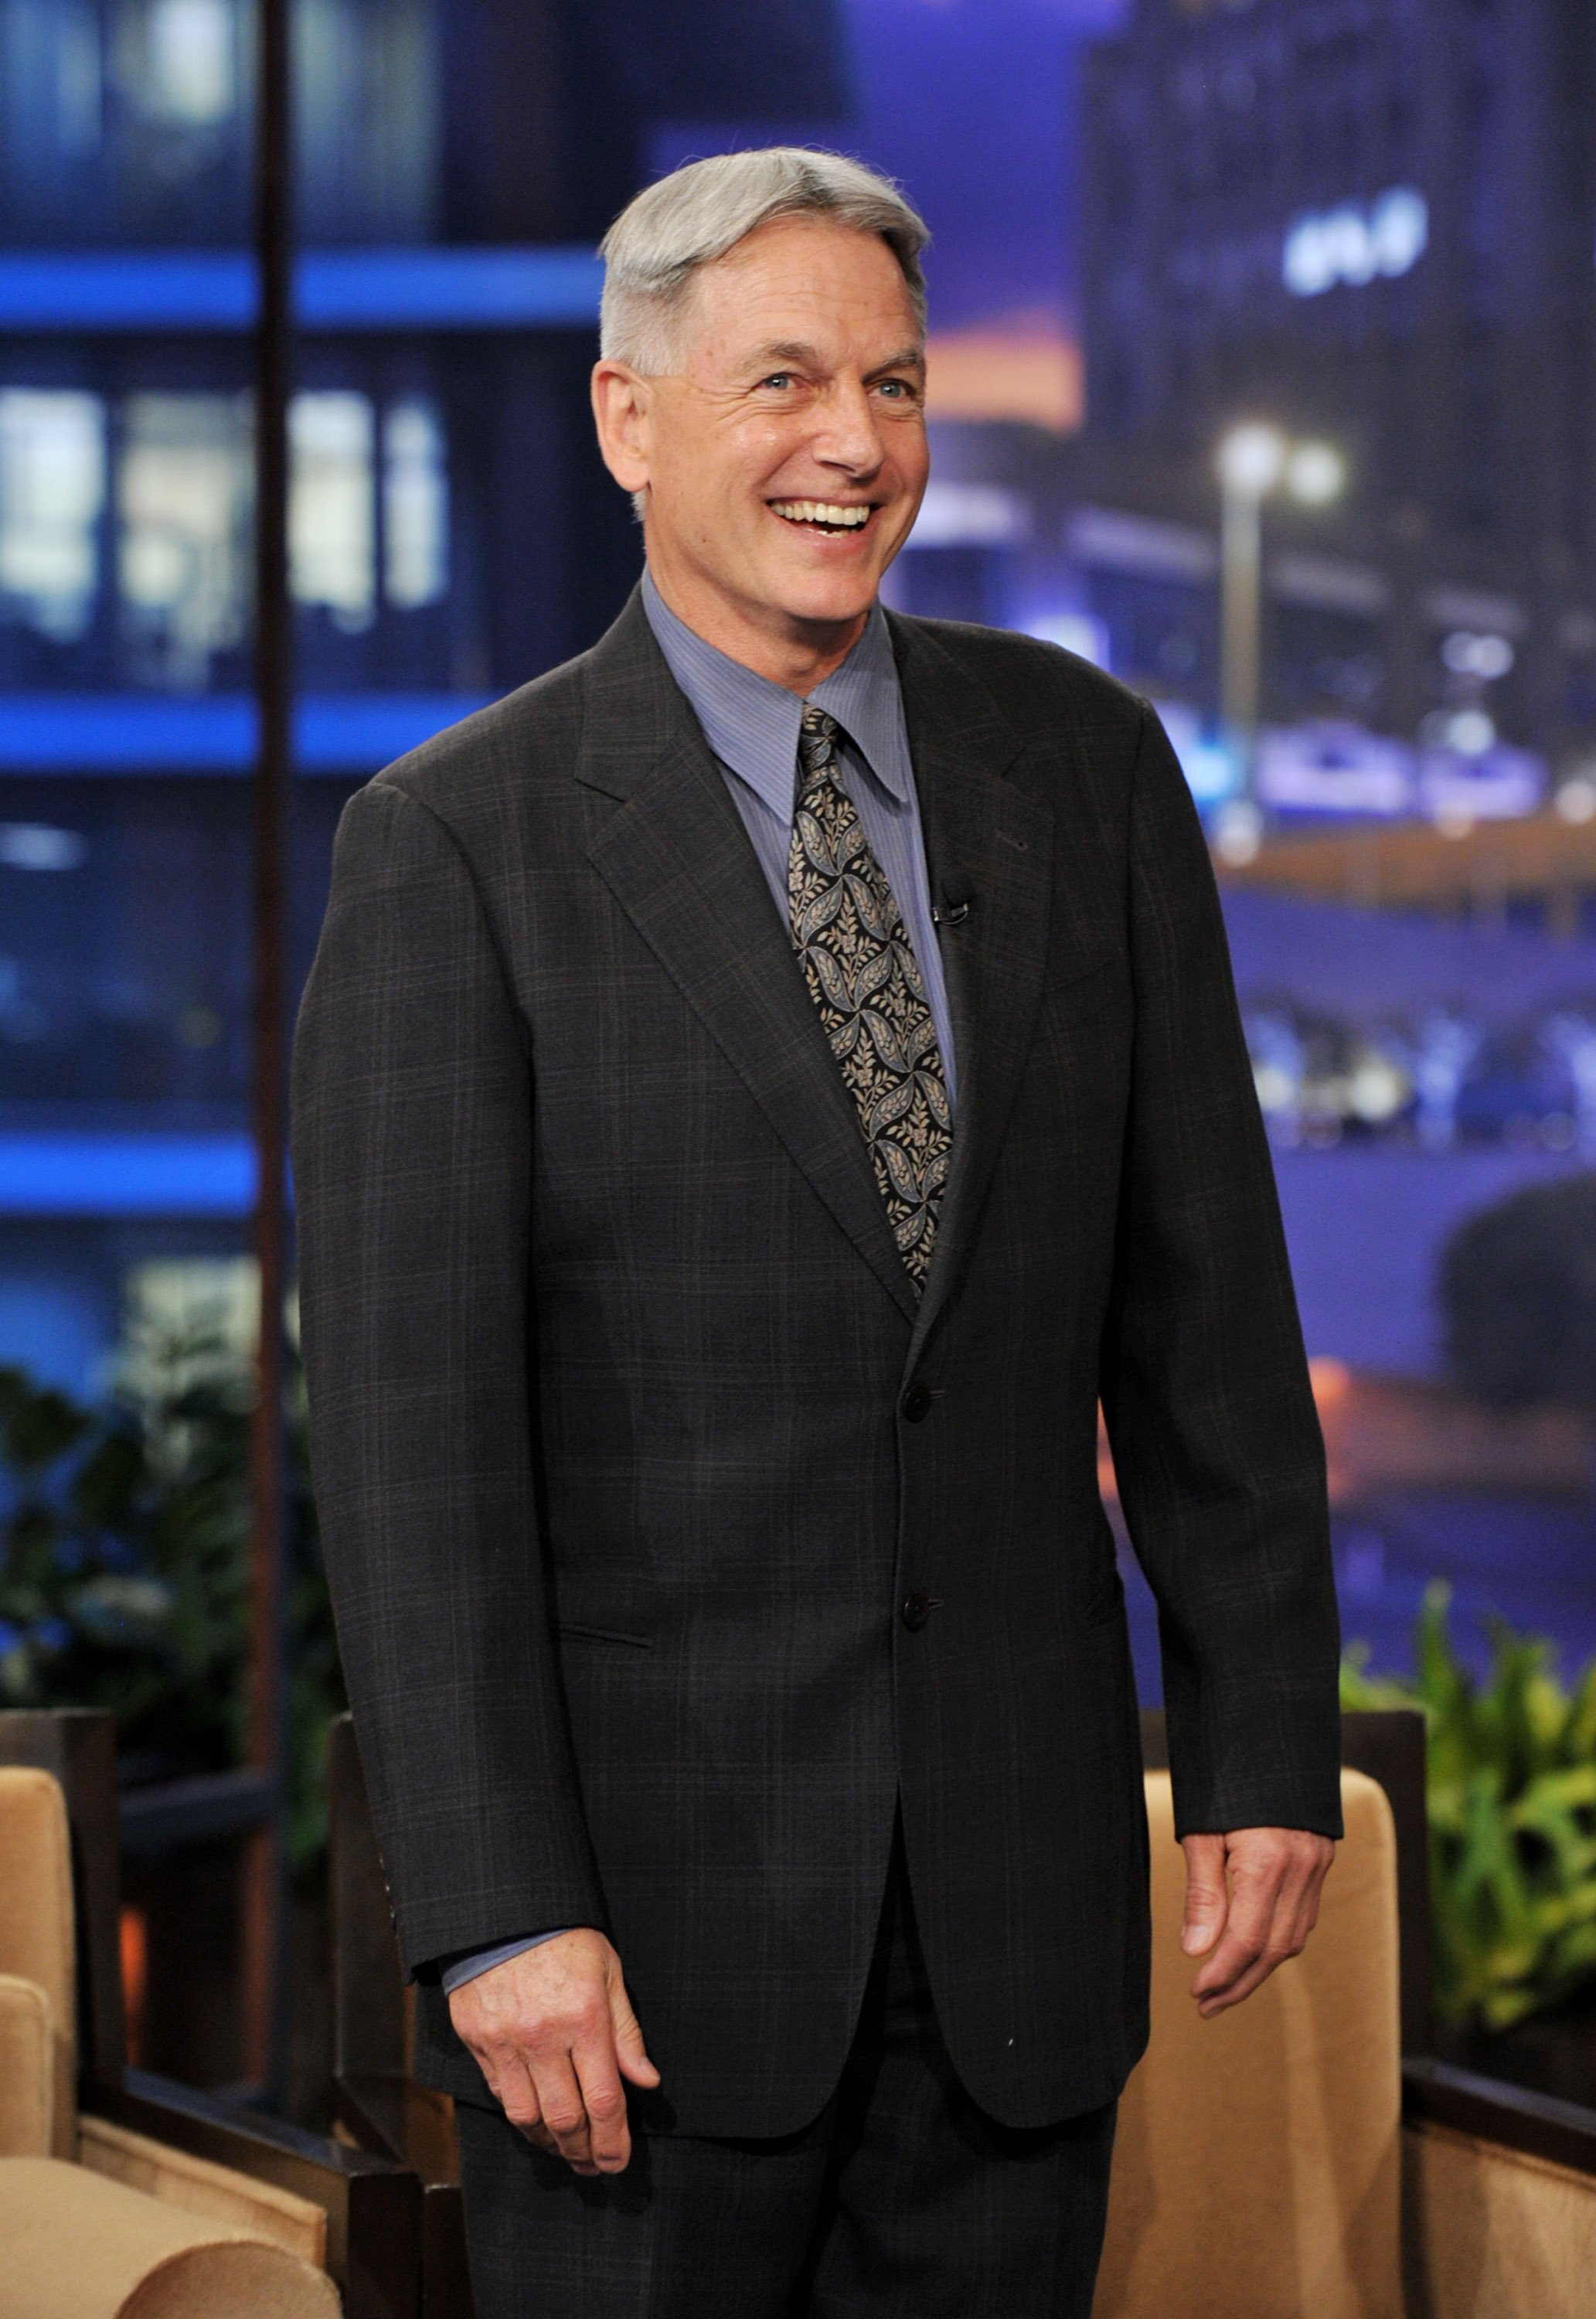 Mark Harmon in der Tonight Show mit Jay Leno bei den NBC Studios am 31. Januar, 2012 in Burbank, Kalifornien. | Quelle: Getty Images